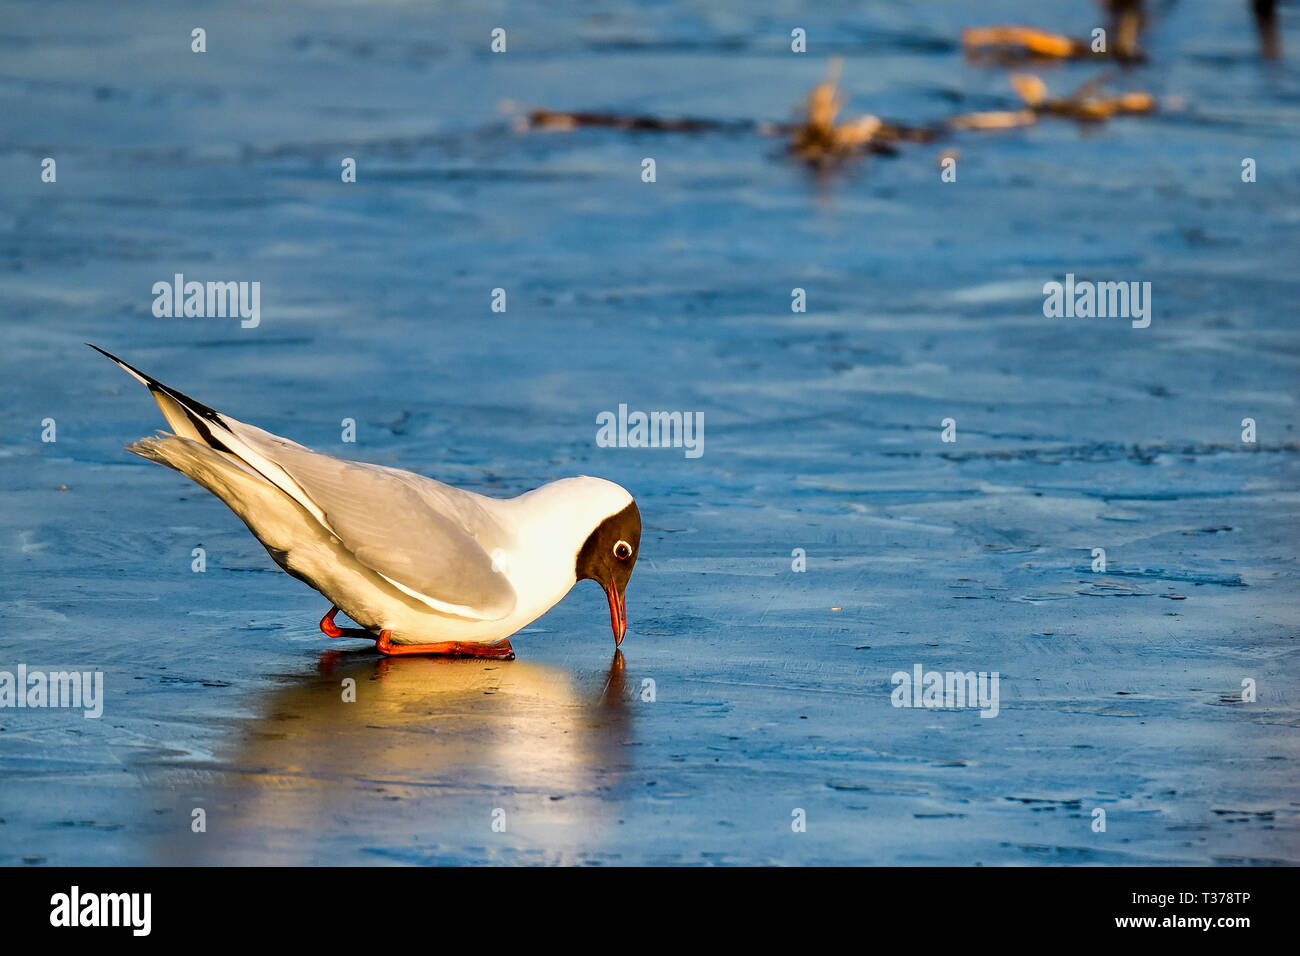 Black-headed Gull is analyzing if the ice will melt soon? Or Gull just sees something interesting under the ice? - Stock Image